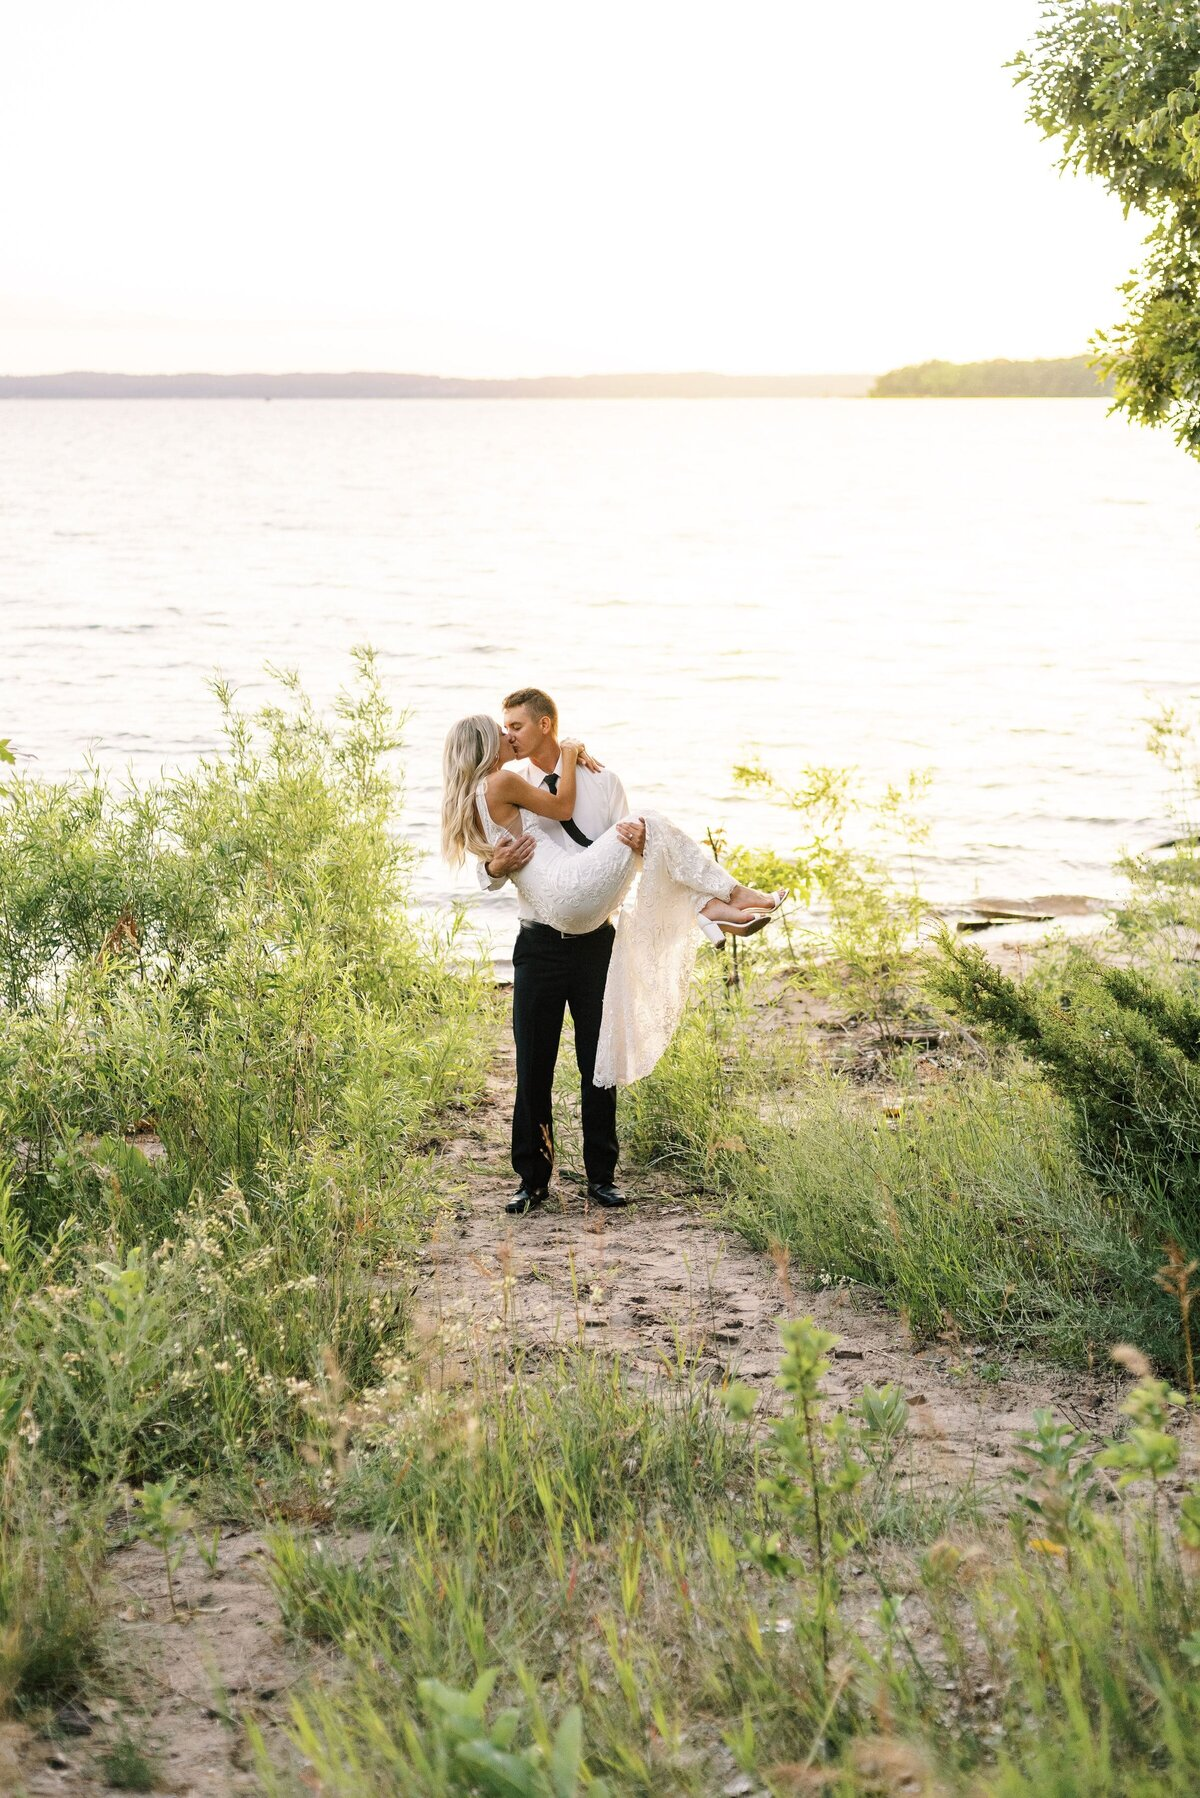 The Day's Design Traverse City Florist Elopement-min